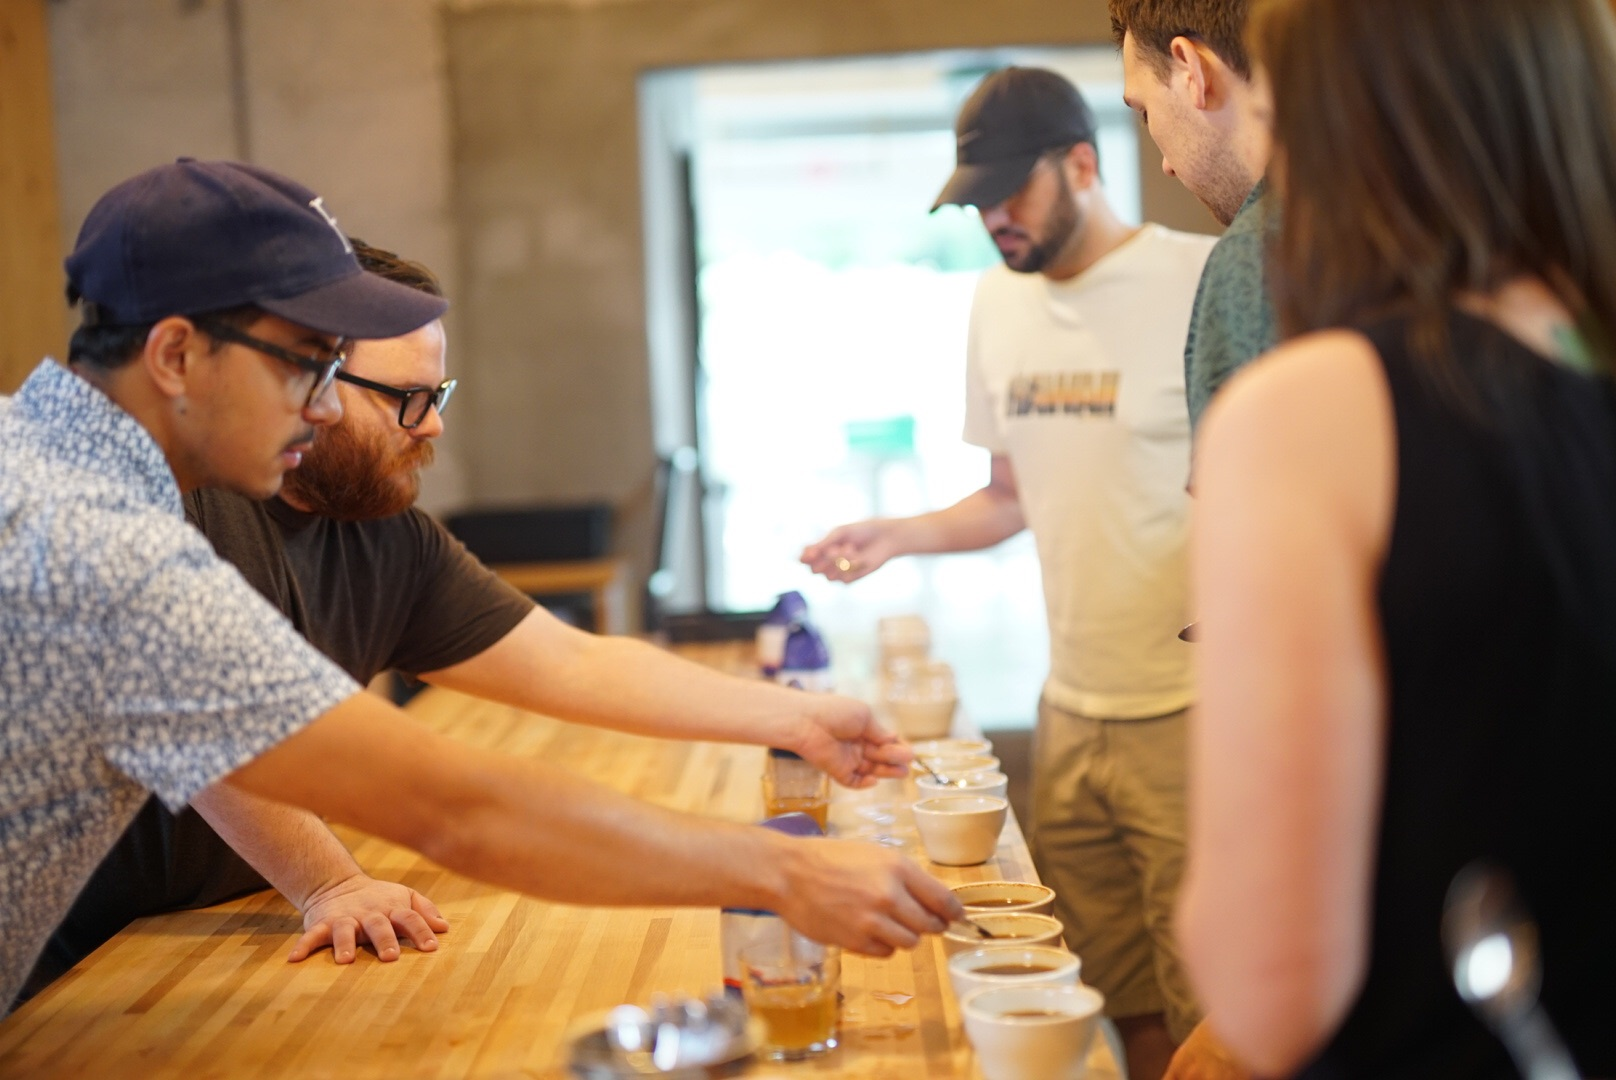 Diego (who, coincidentally is Guatemalan) guiding the coffee cupping at Charleston's branch of Counter Culture Coffee; Chris Nickels over the shoulder in green in a nice new birthday shirt.